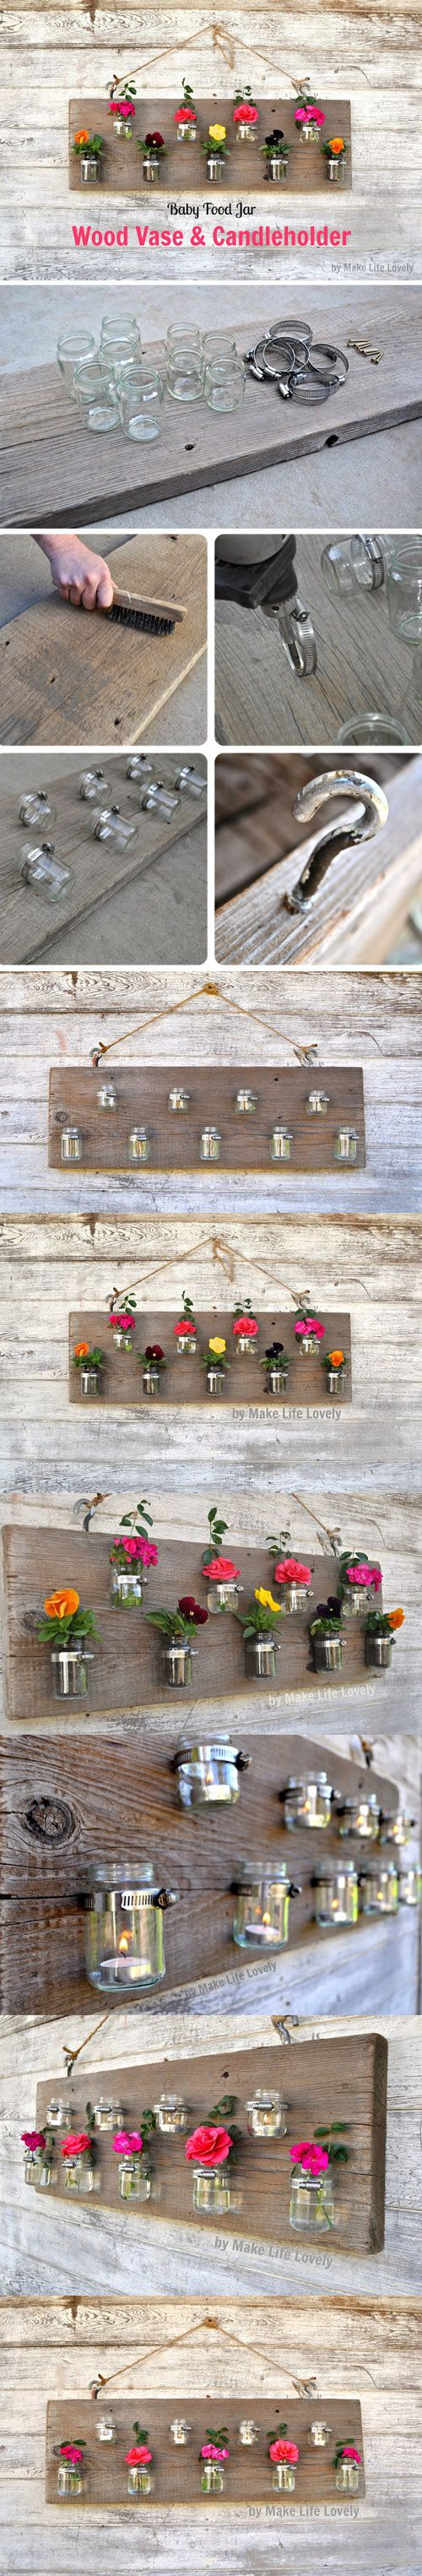 Vases pendants with glass jars